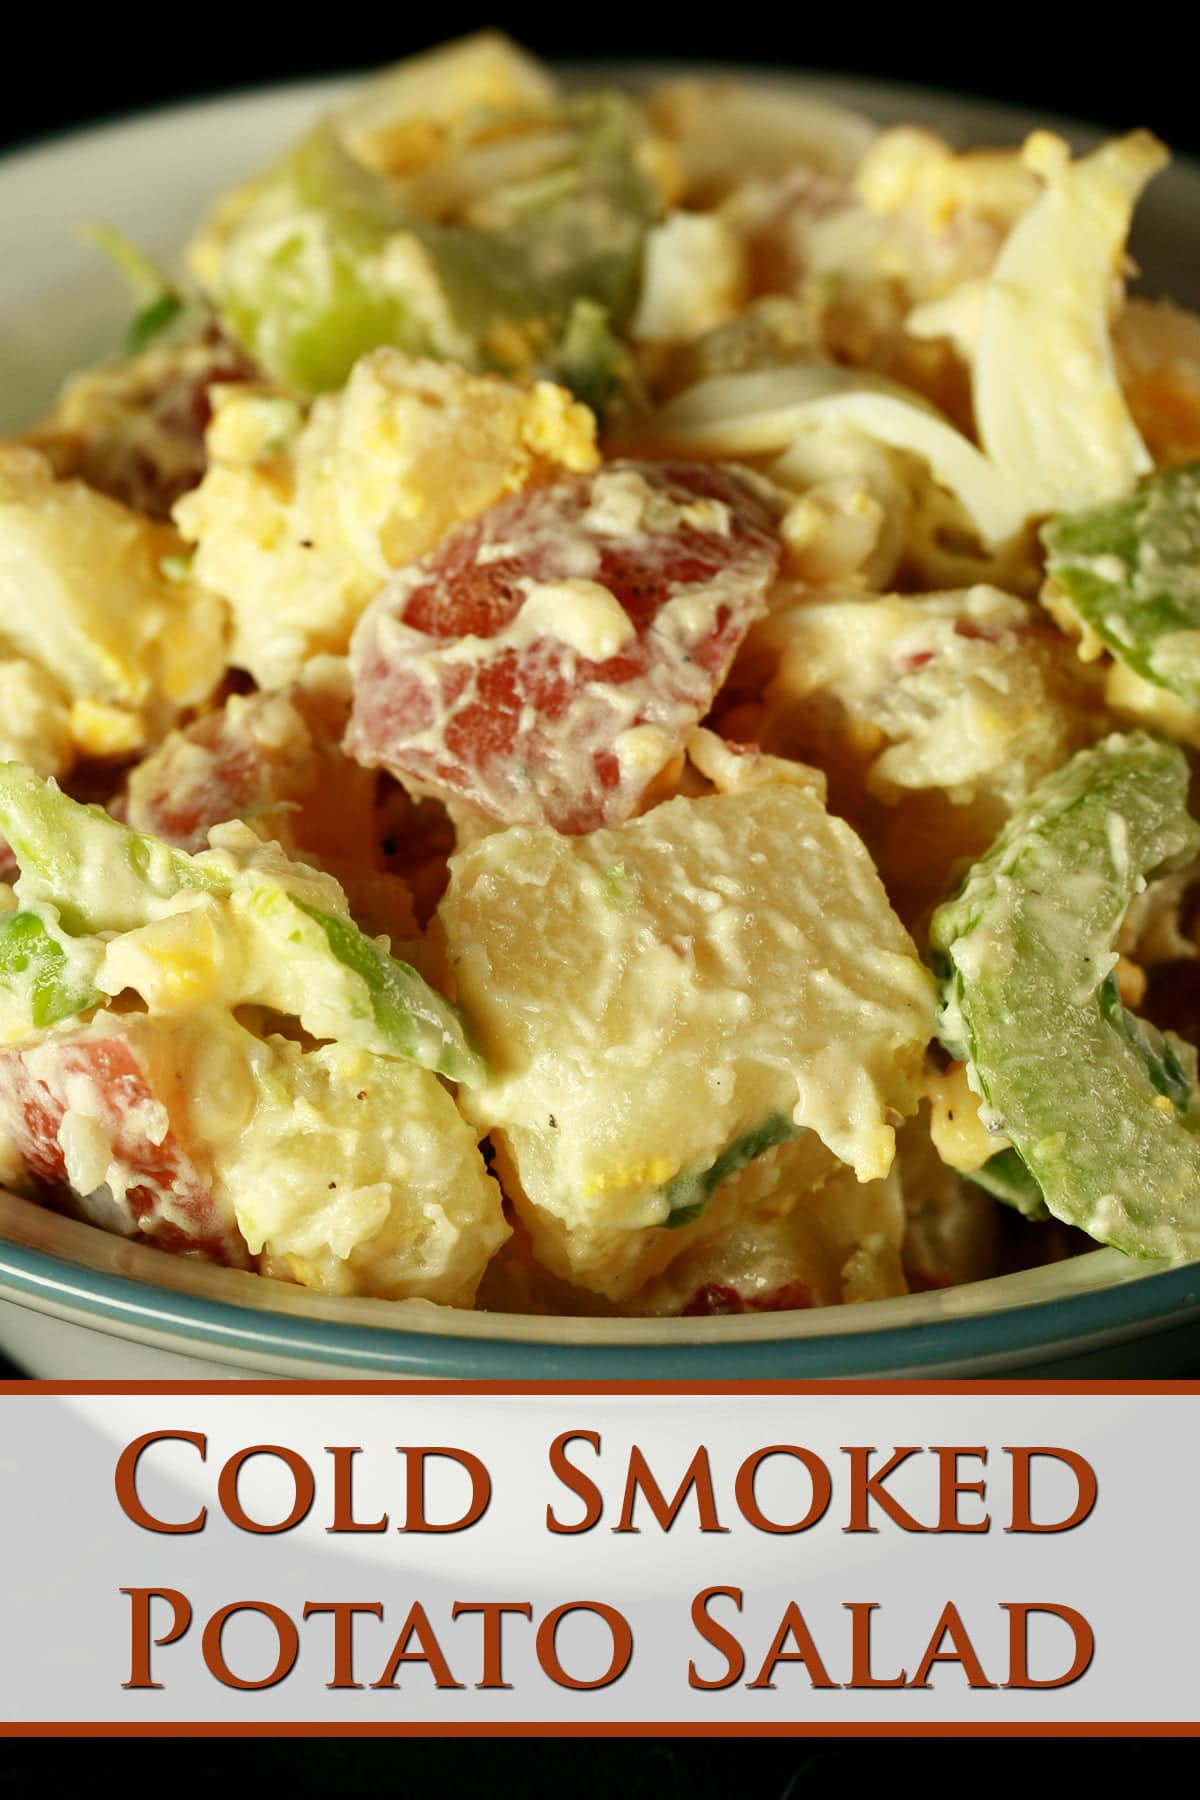 A bowl of a creamy cold-smoked potato salad. Chunks of red potatos, celery slices, and hard boiled egg are all visible.